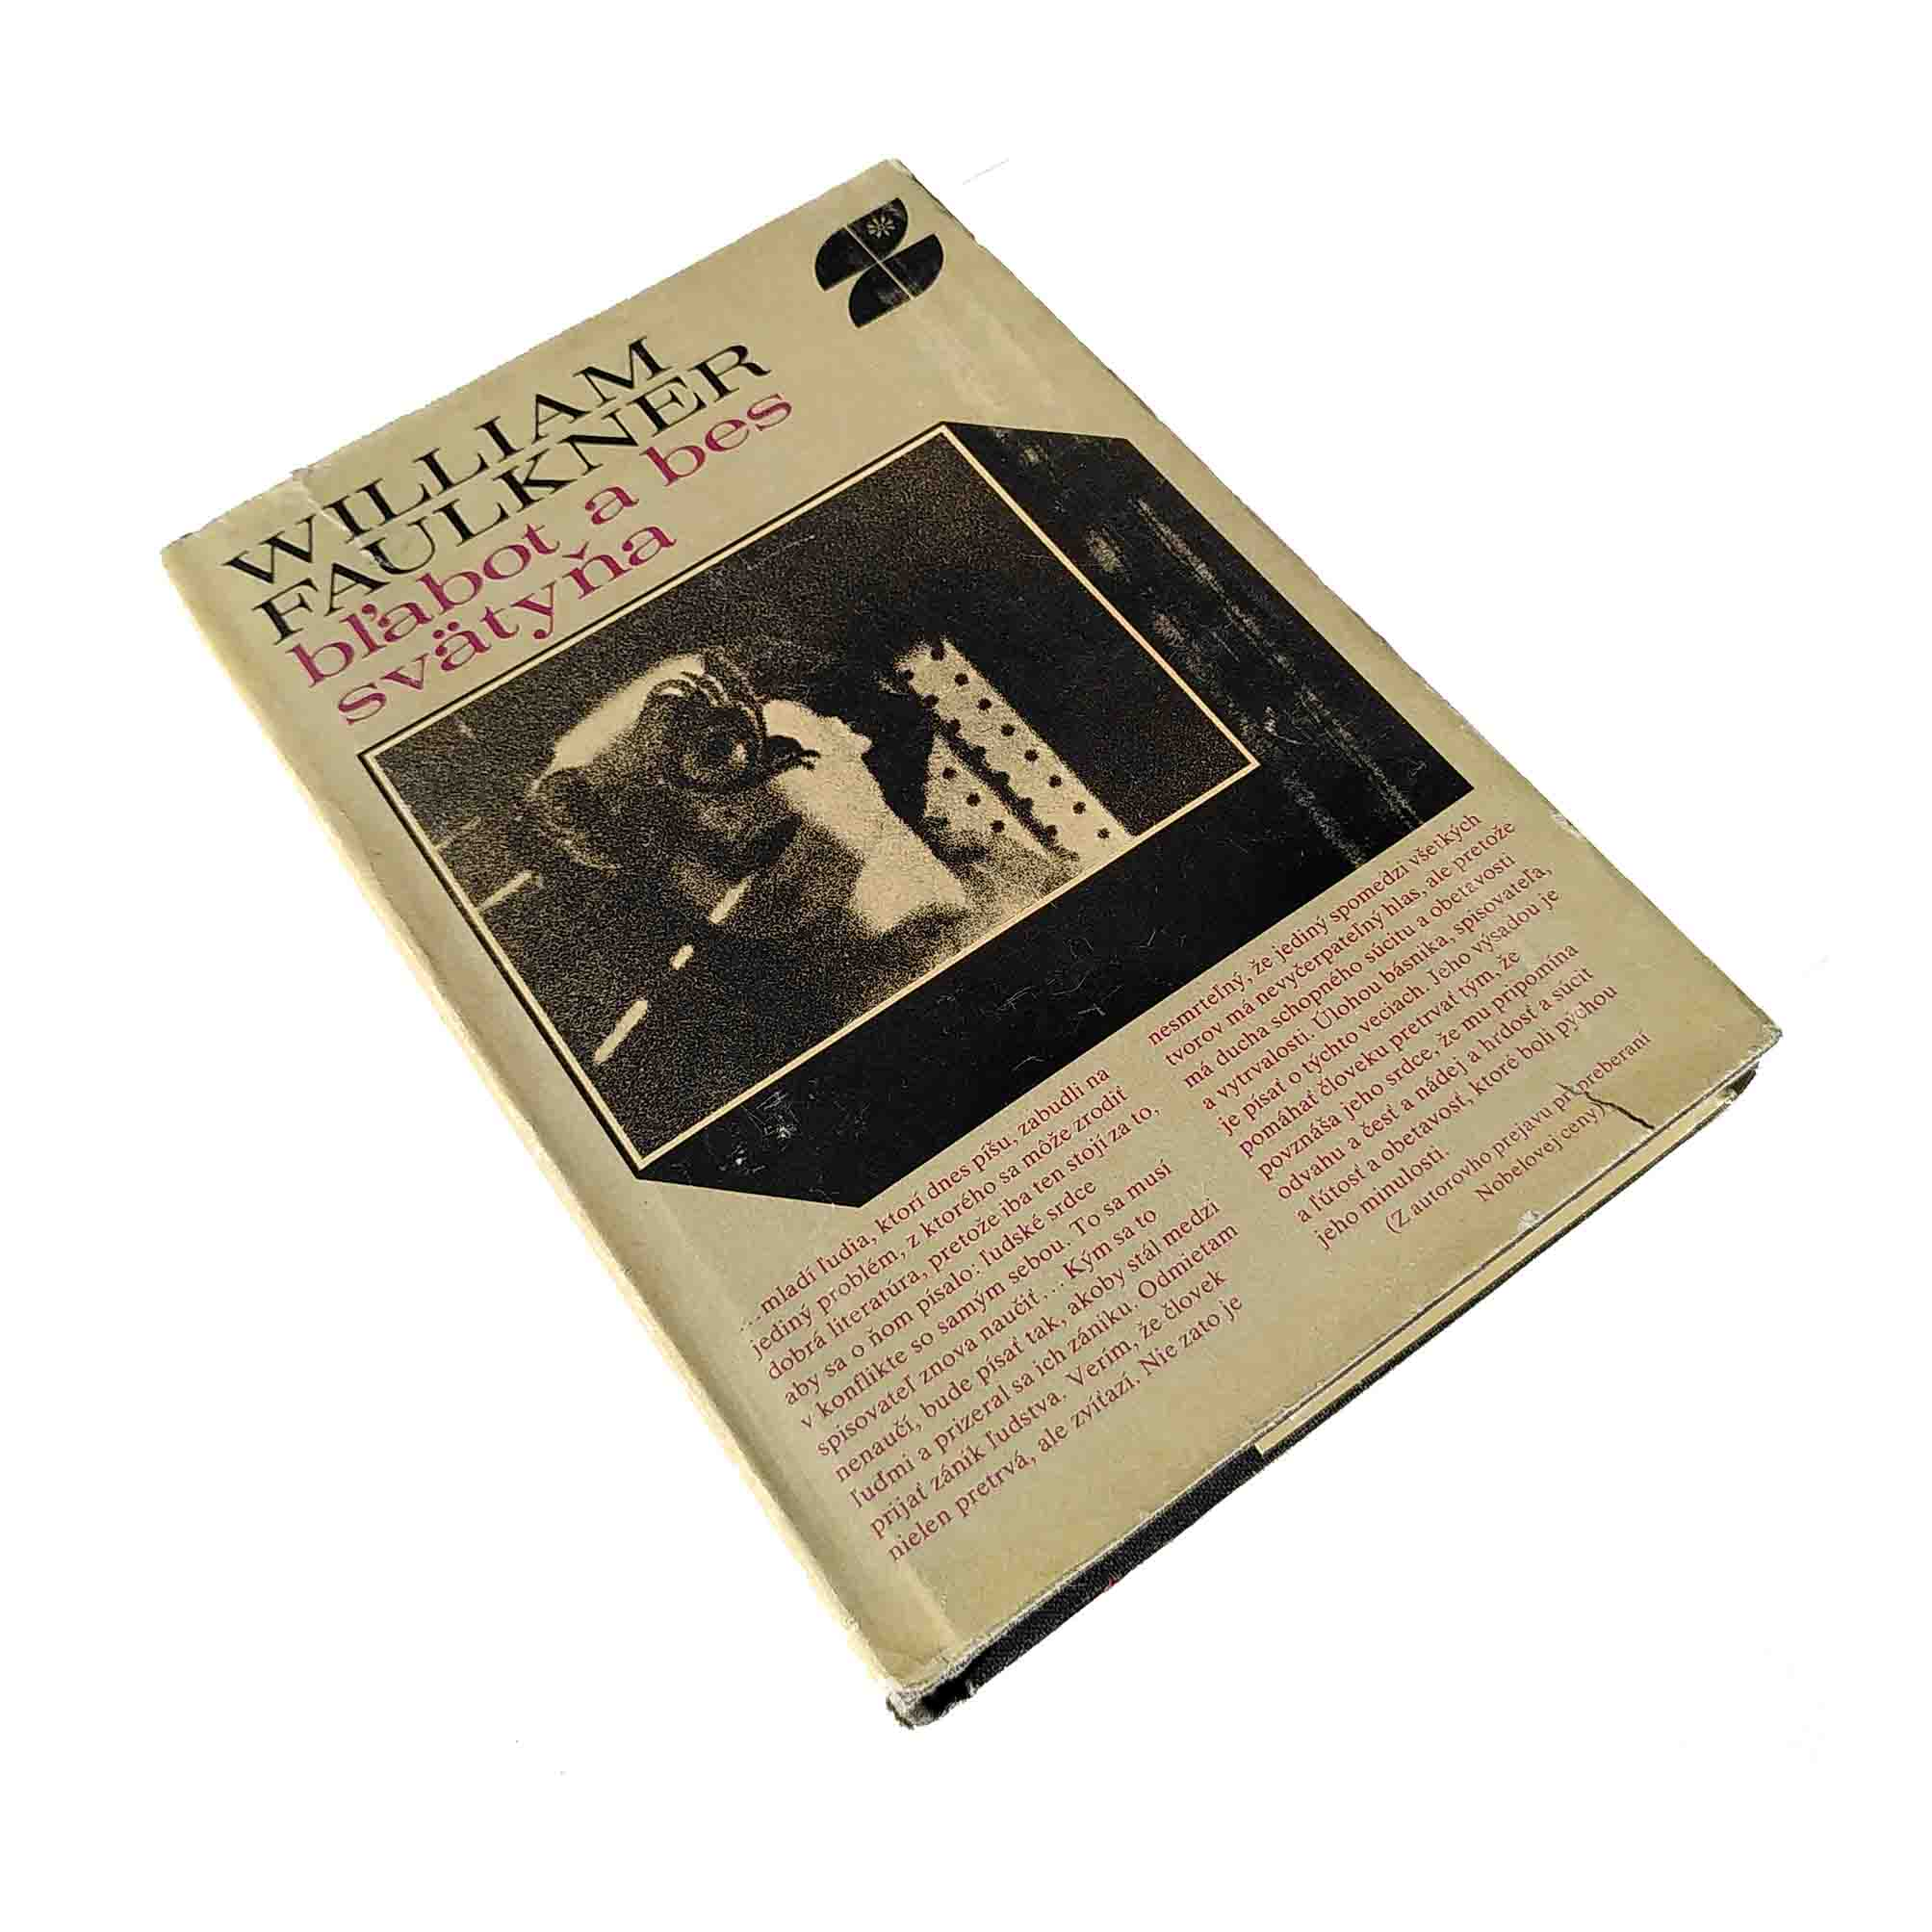 5915 Faulkner Sound Fury Slovak First Edition 1978 Dust Jacket recto free N